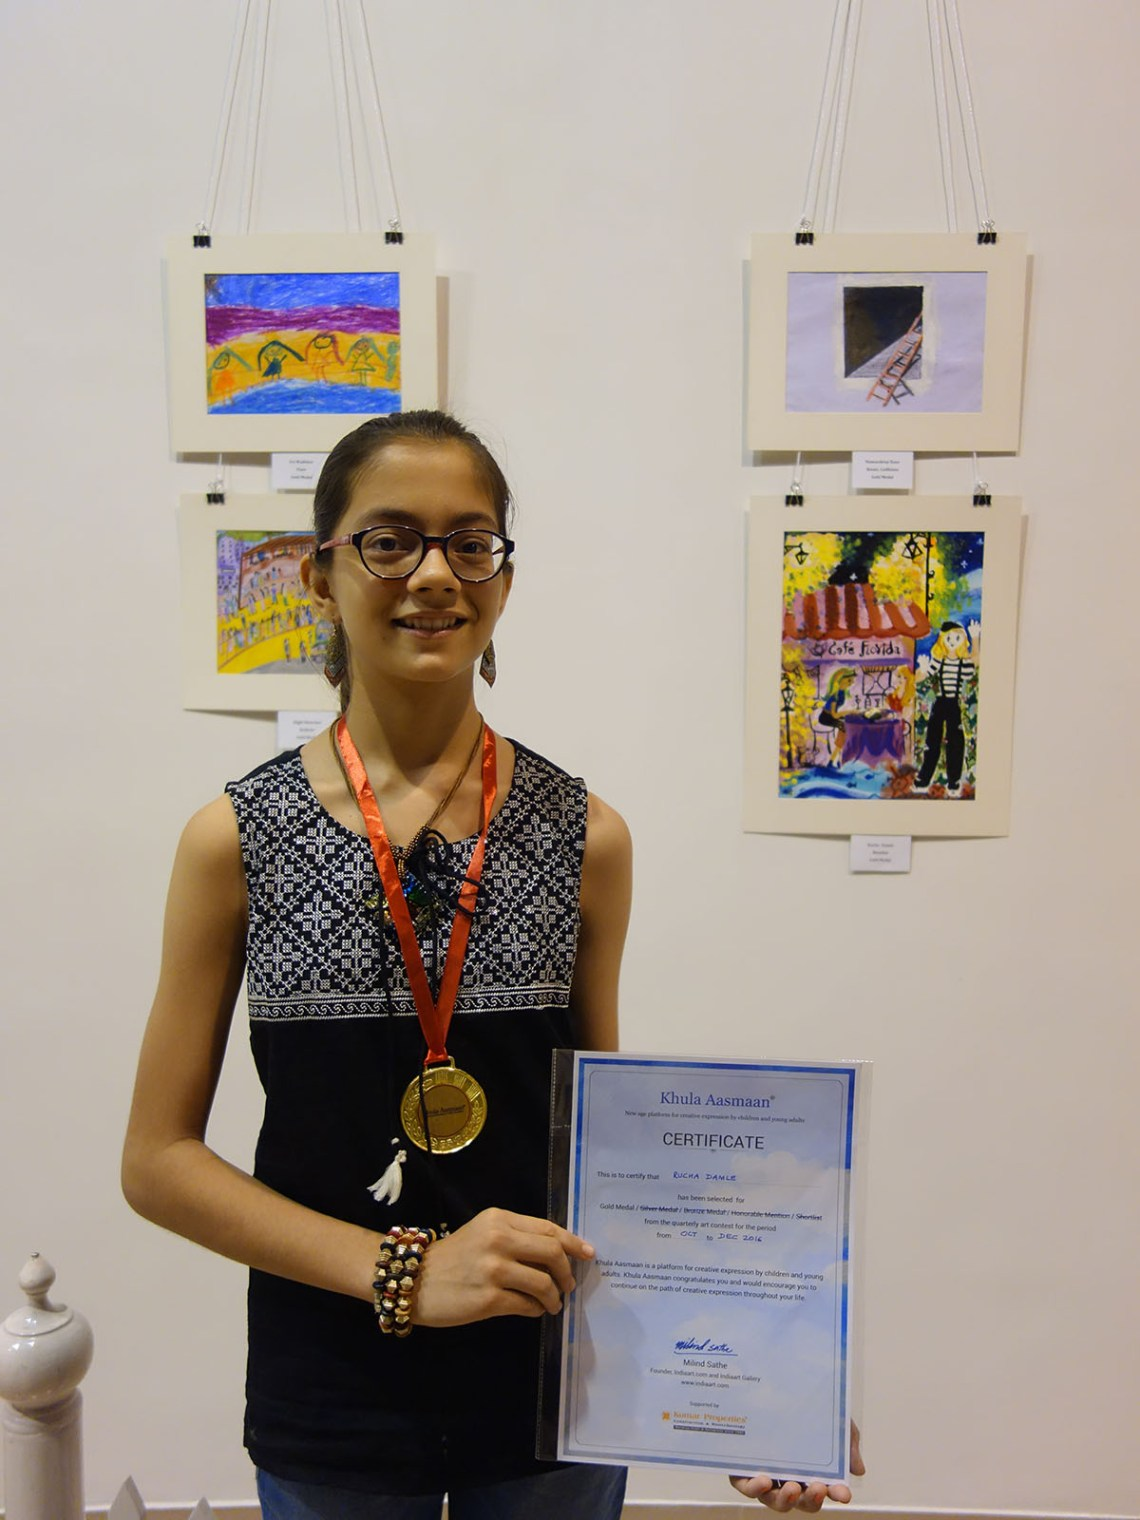 Rucha Damle with her medal and painting in the background at Khula Aasmaan art exhibition of medal winning artworks at Mumbai - October 2017. Rucha's video is part of videos of medal winning children.